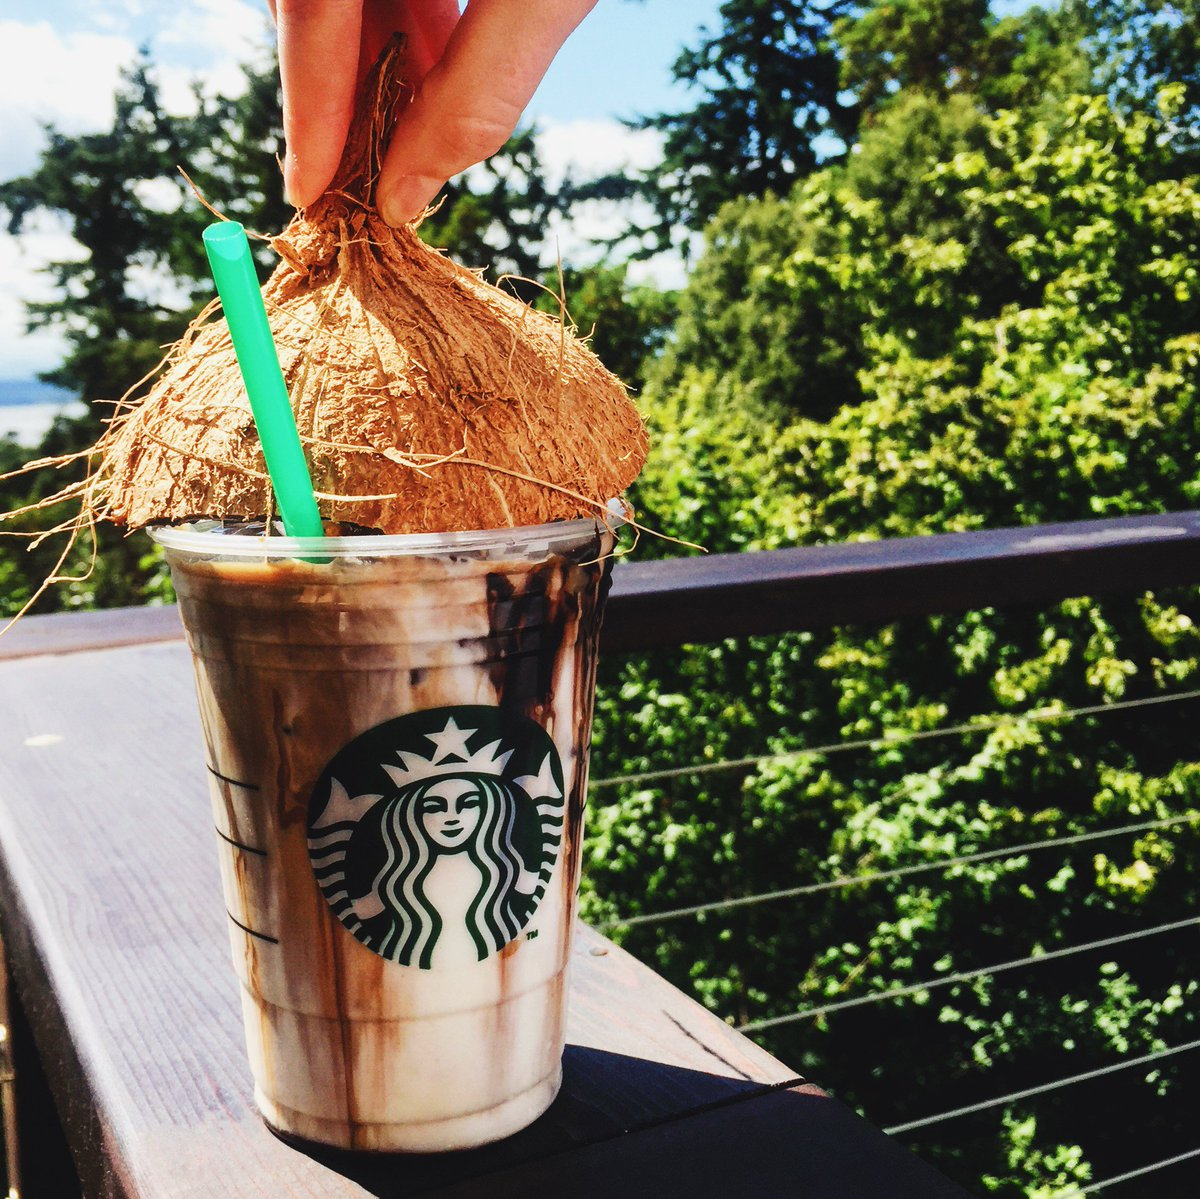 Coconut milk with espresso, topped with caramel & mocha drizzle. This. Is. Summer. #IcedCoconutMilkMochaMacchiato